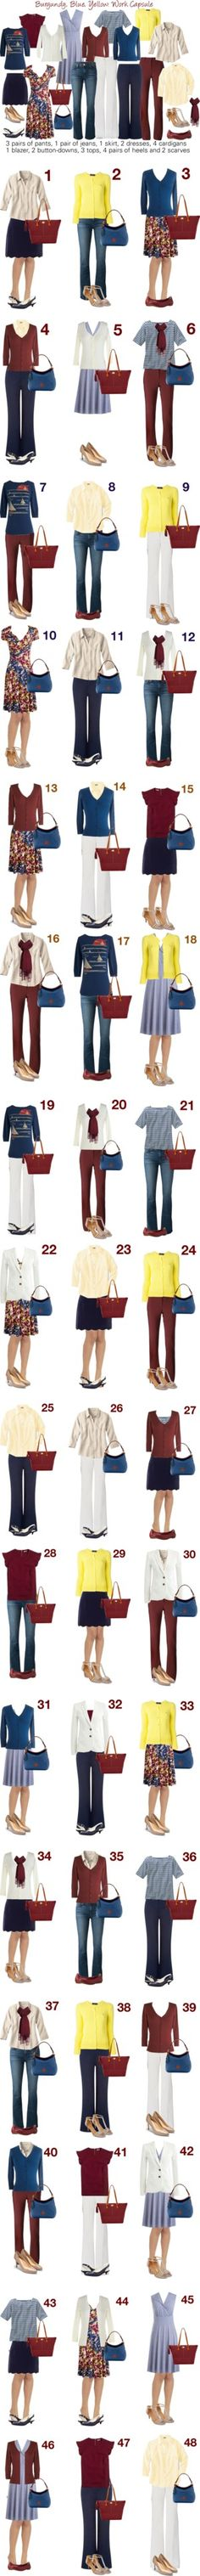 Burgundy, Blue & Yellow: Capsule Wardrobe by kristin727 on Polyvore featuring House of Holland, Lanvin, Dooney & Bourke, J.Crew, Karina, MINKPINK, Emily and Fin, Monsoon, Anne Klein and J Brand